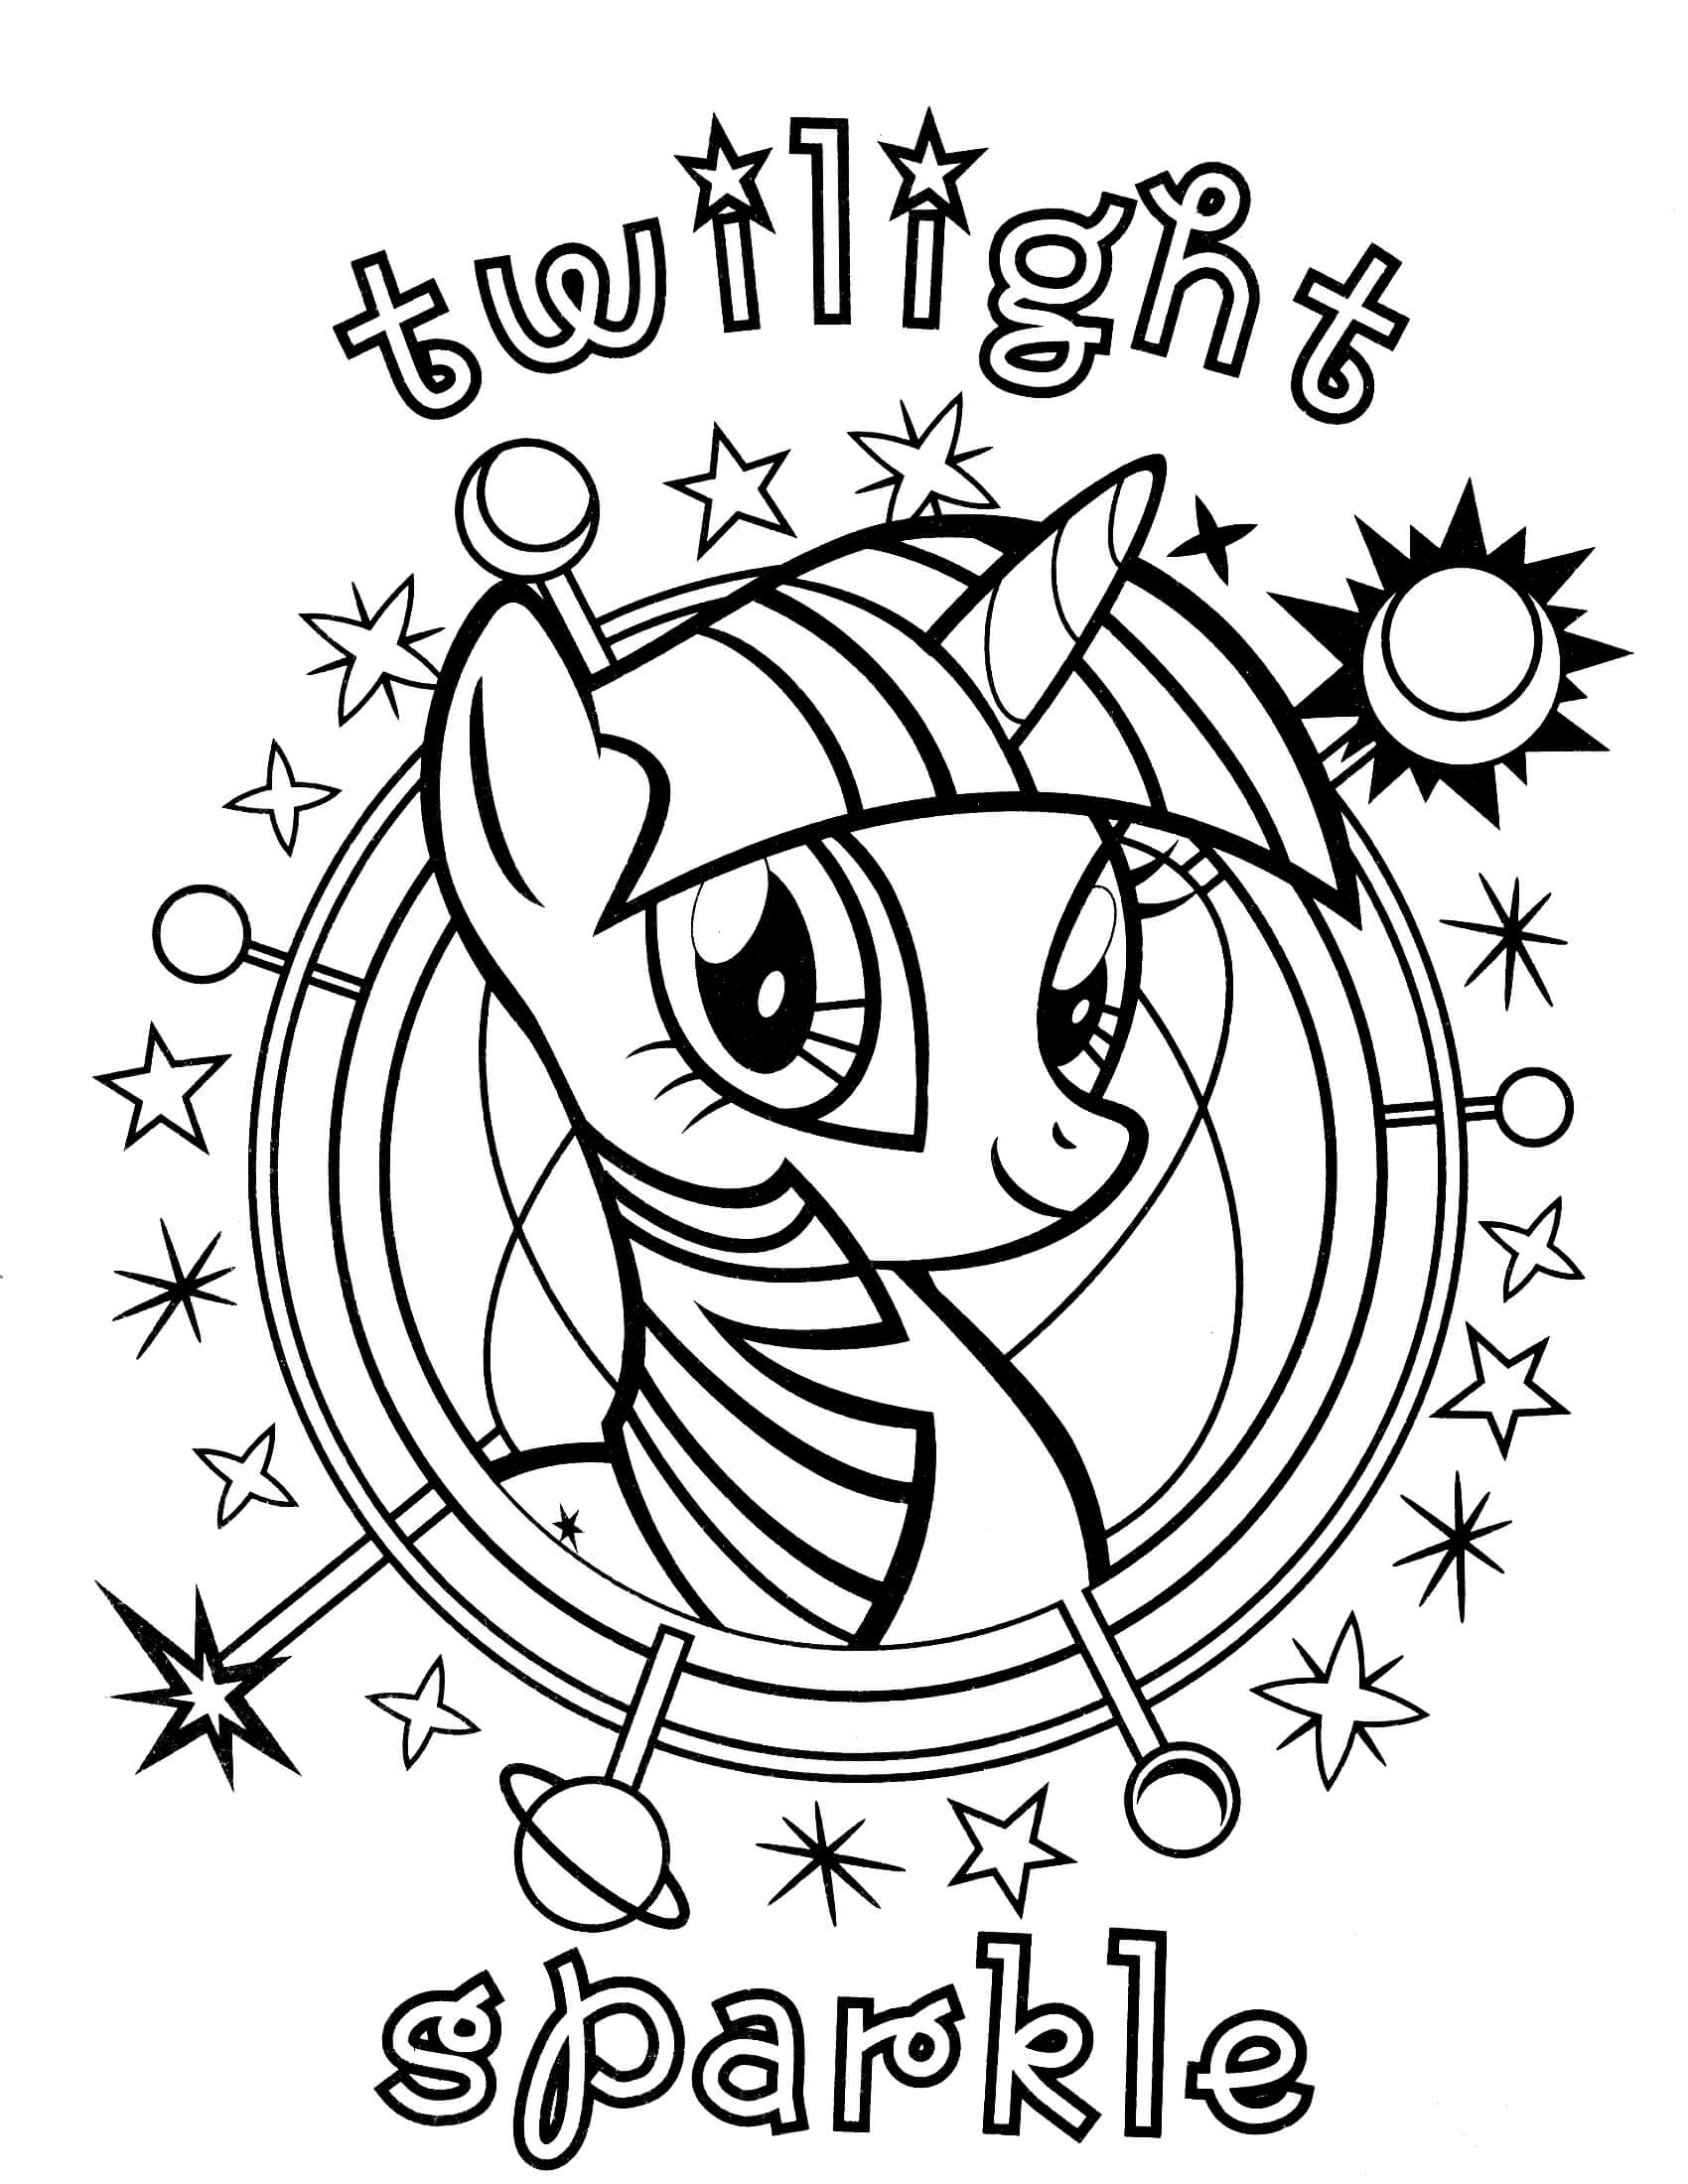 rarity coloring page rarity coloring pages neo coloring page coloring rarity